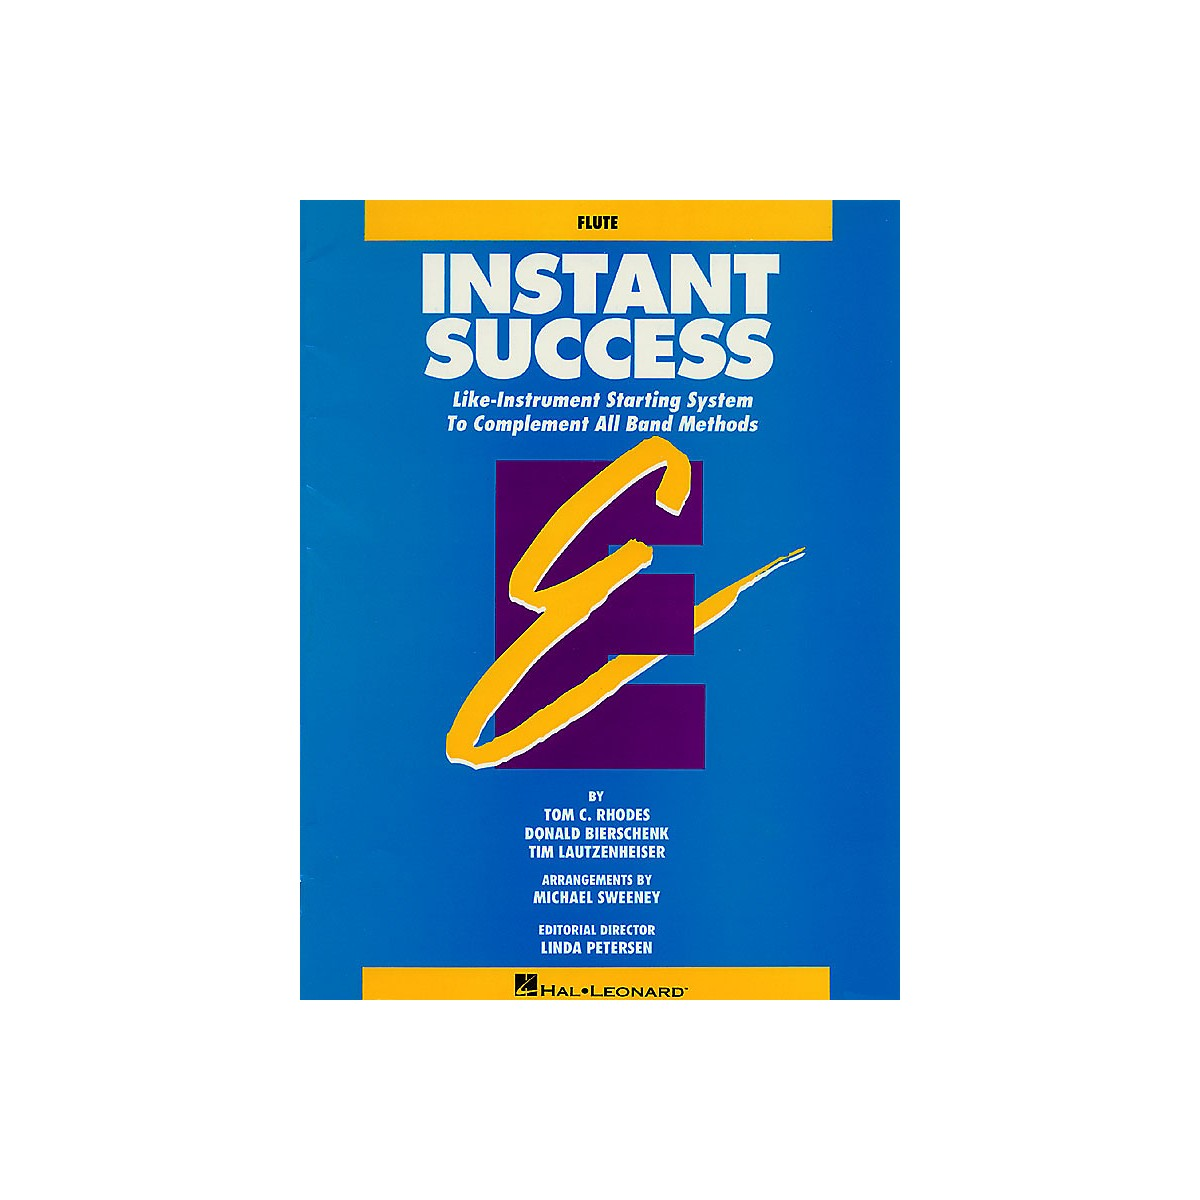 Hal Leonard Instant Success - Oboe (Starting System for All Band Methods) Essential Elements Series